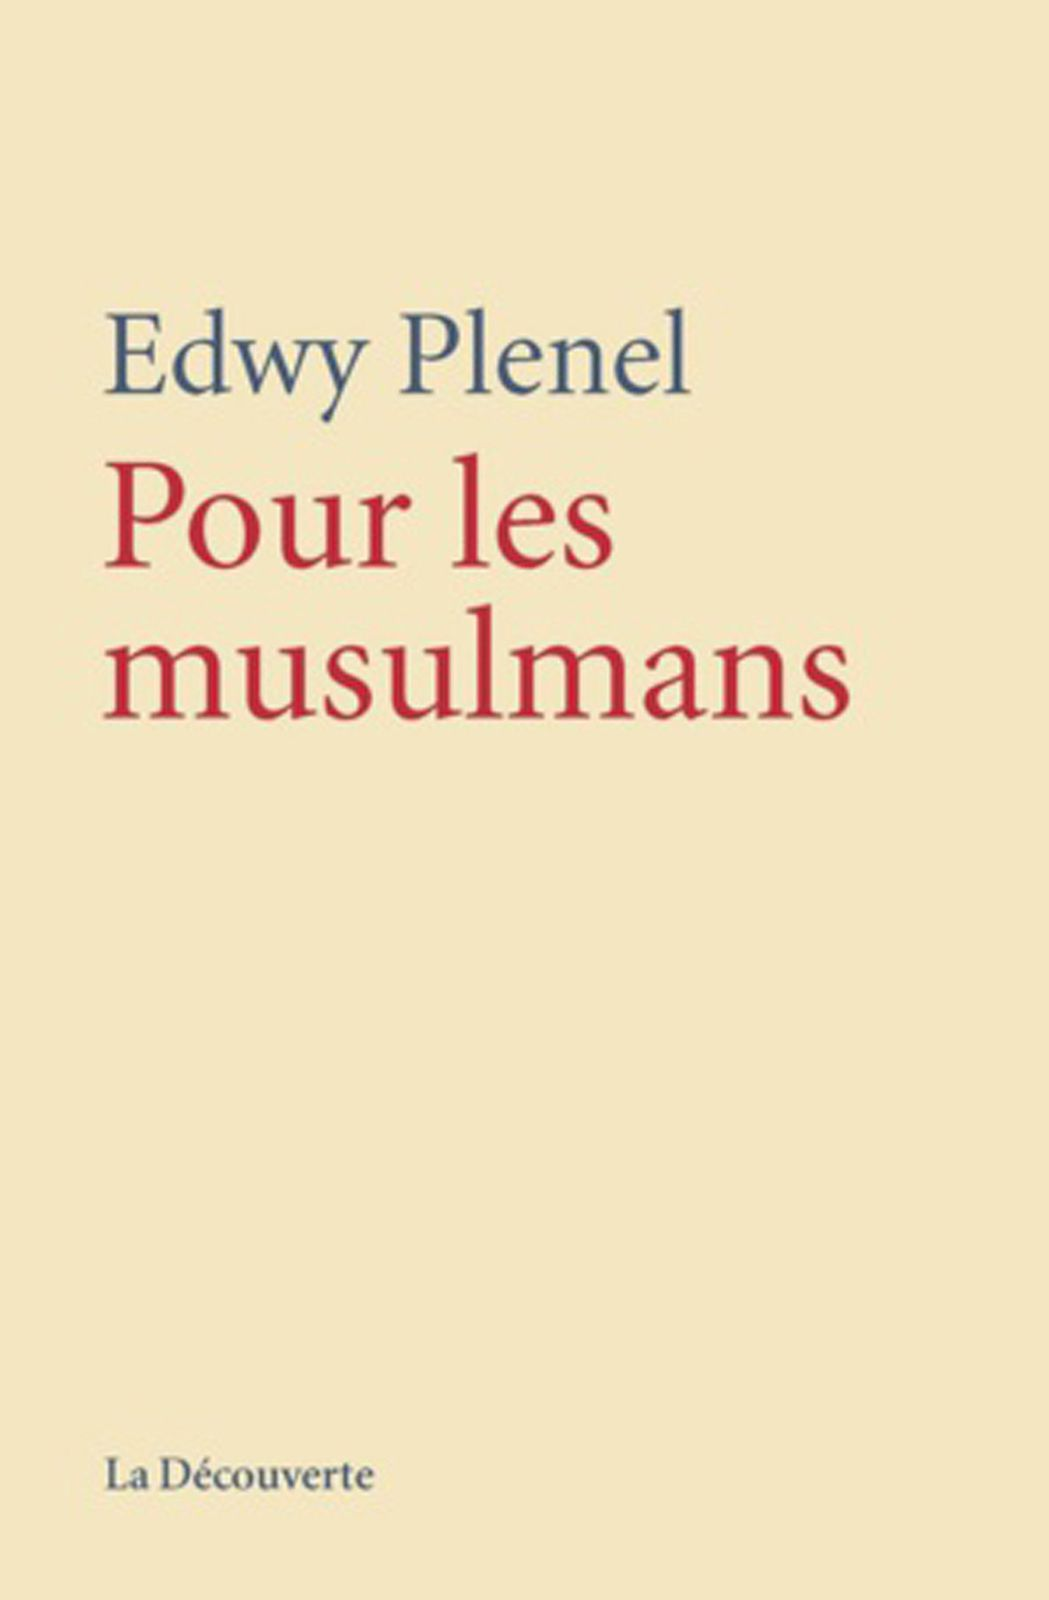 Couverture su livre (Origine et traduction en arabe)